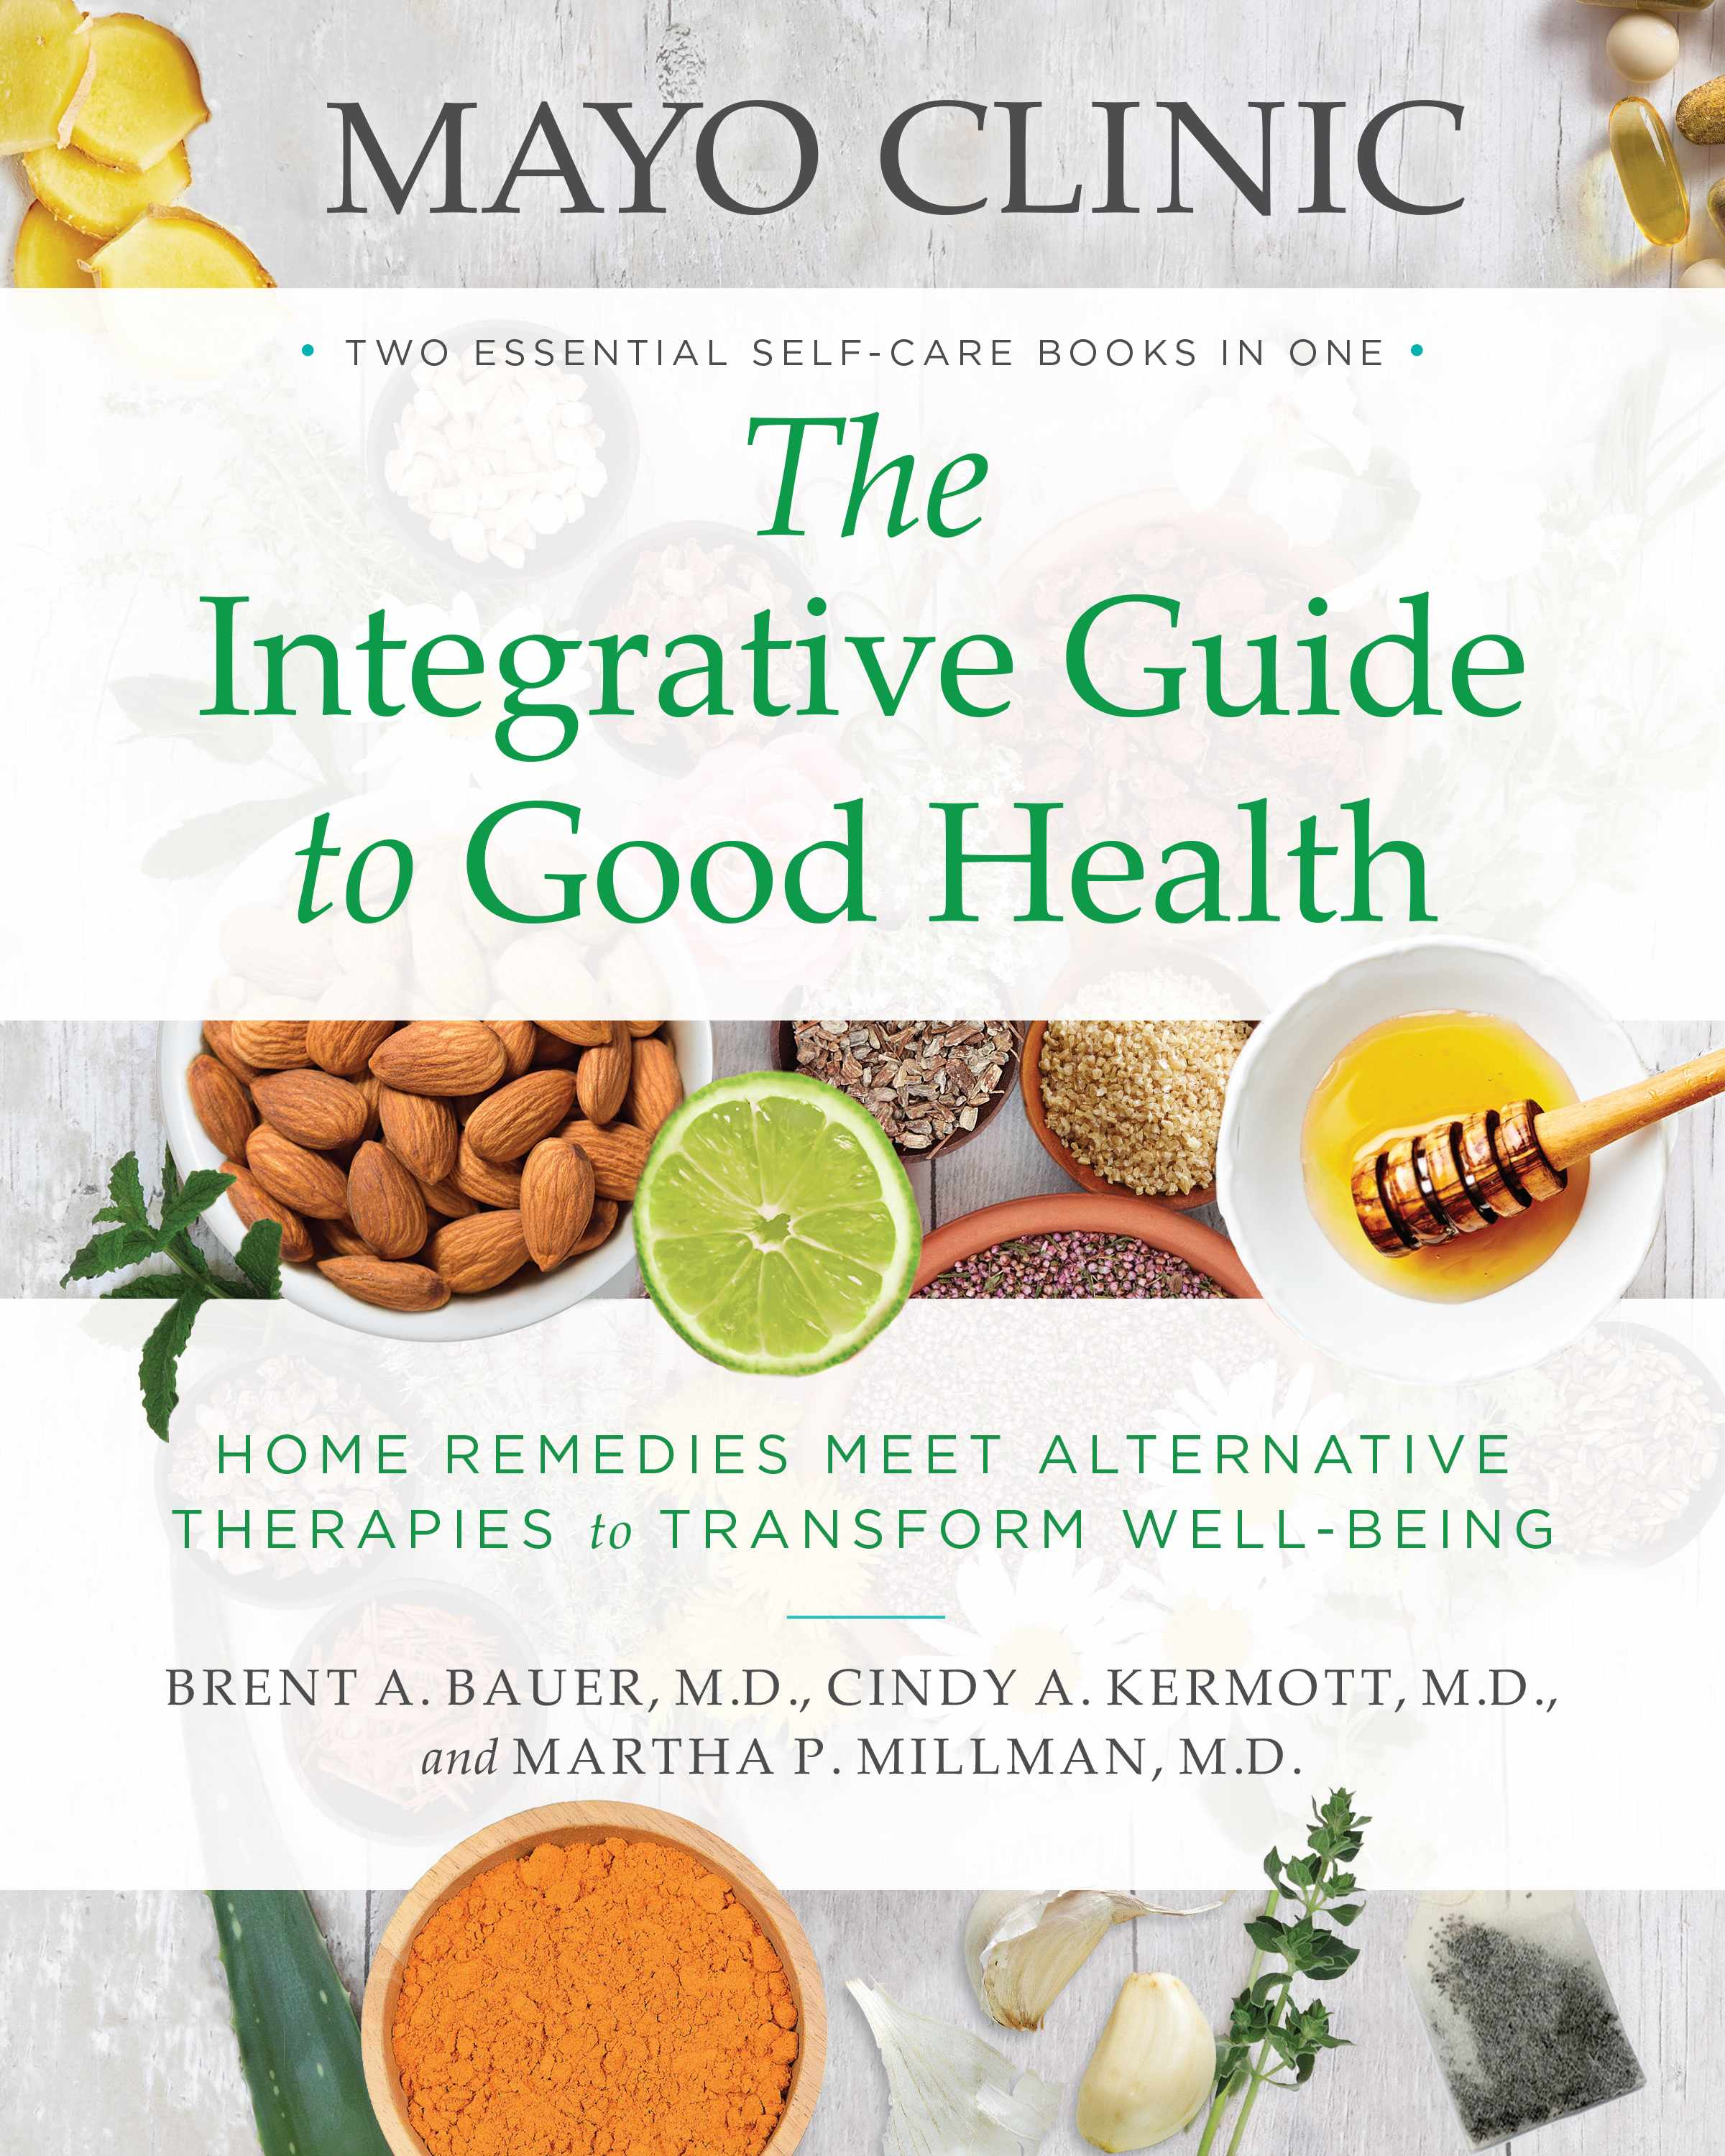 Mayo Clinic releases book on whole-body wellness, complementary